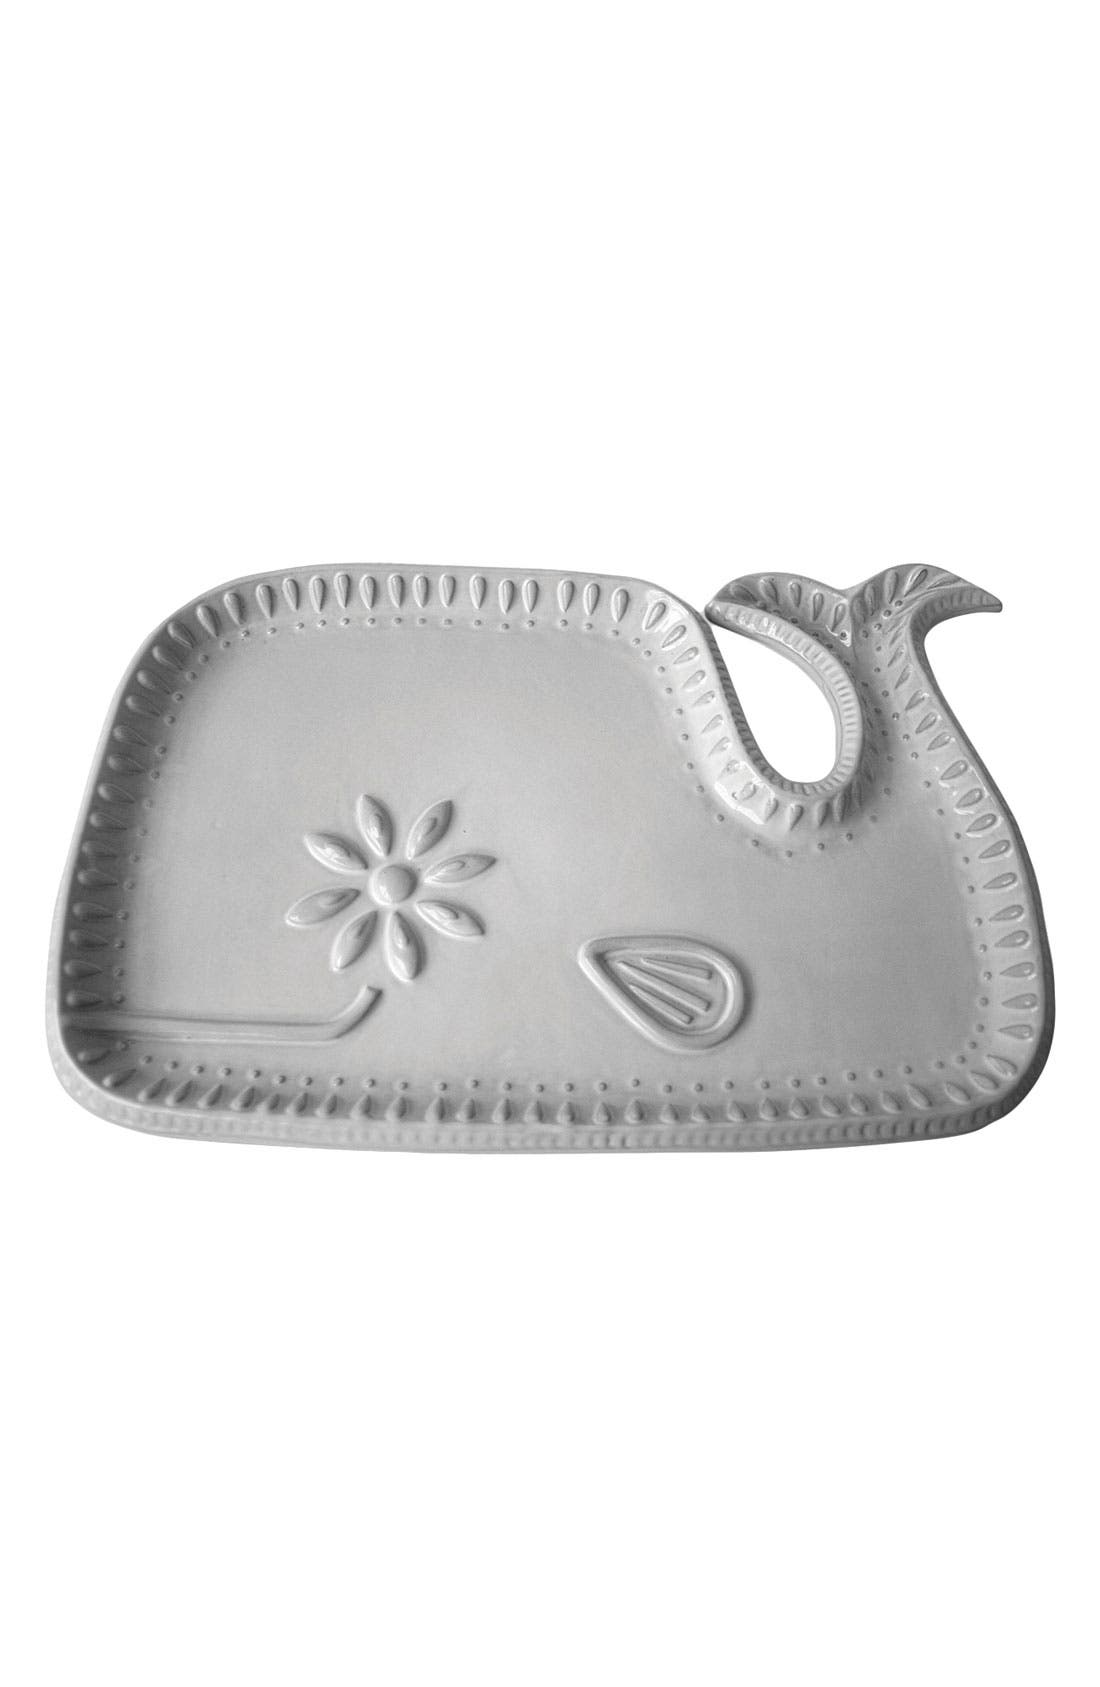 Alternate Image 1 Selected - Jonathan Adler 'Whale' Serving Platter